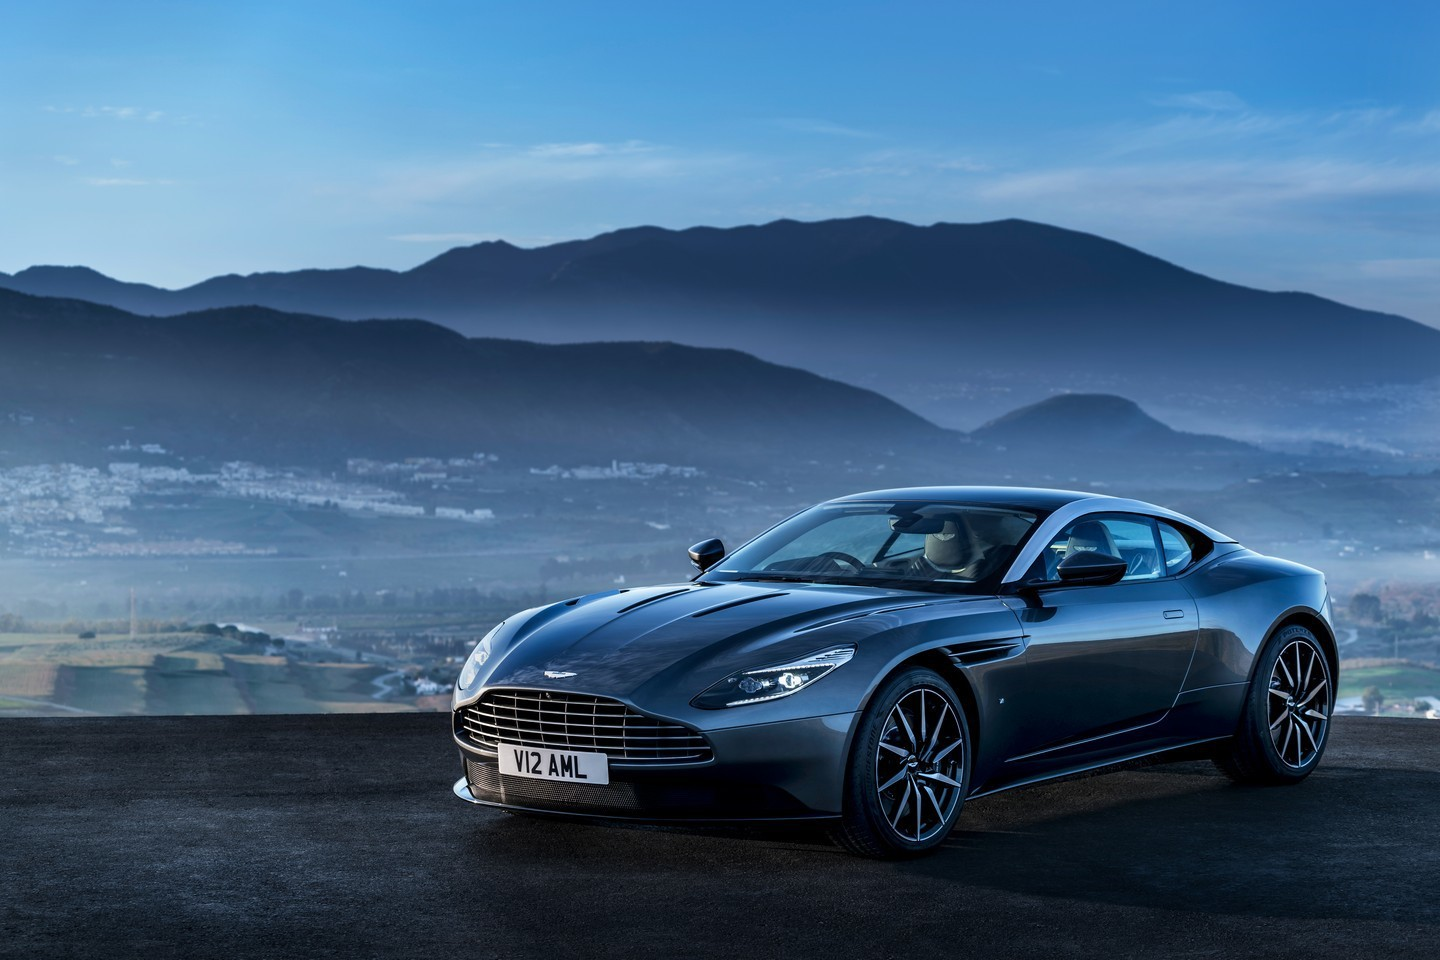 Aston Martin DB11 Wallpapers Images Photos Pictures